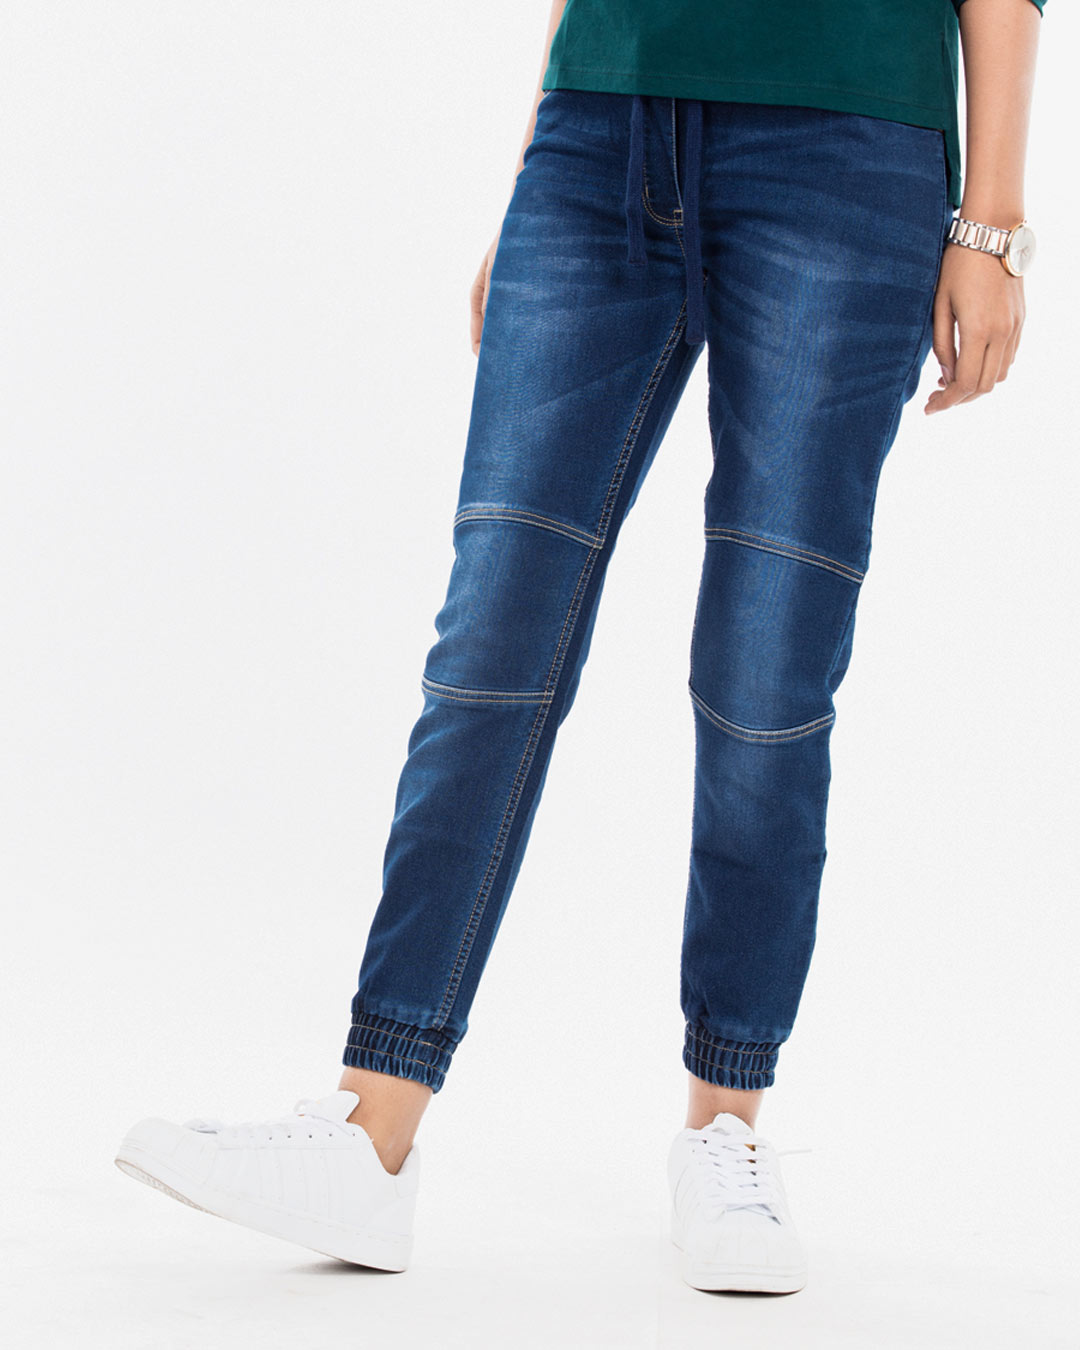 Shop for boys joggers pants online at Target. Free shipping on purchases over $35 and save 5% every day with your Target REDcard.